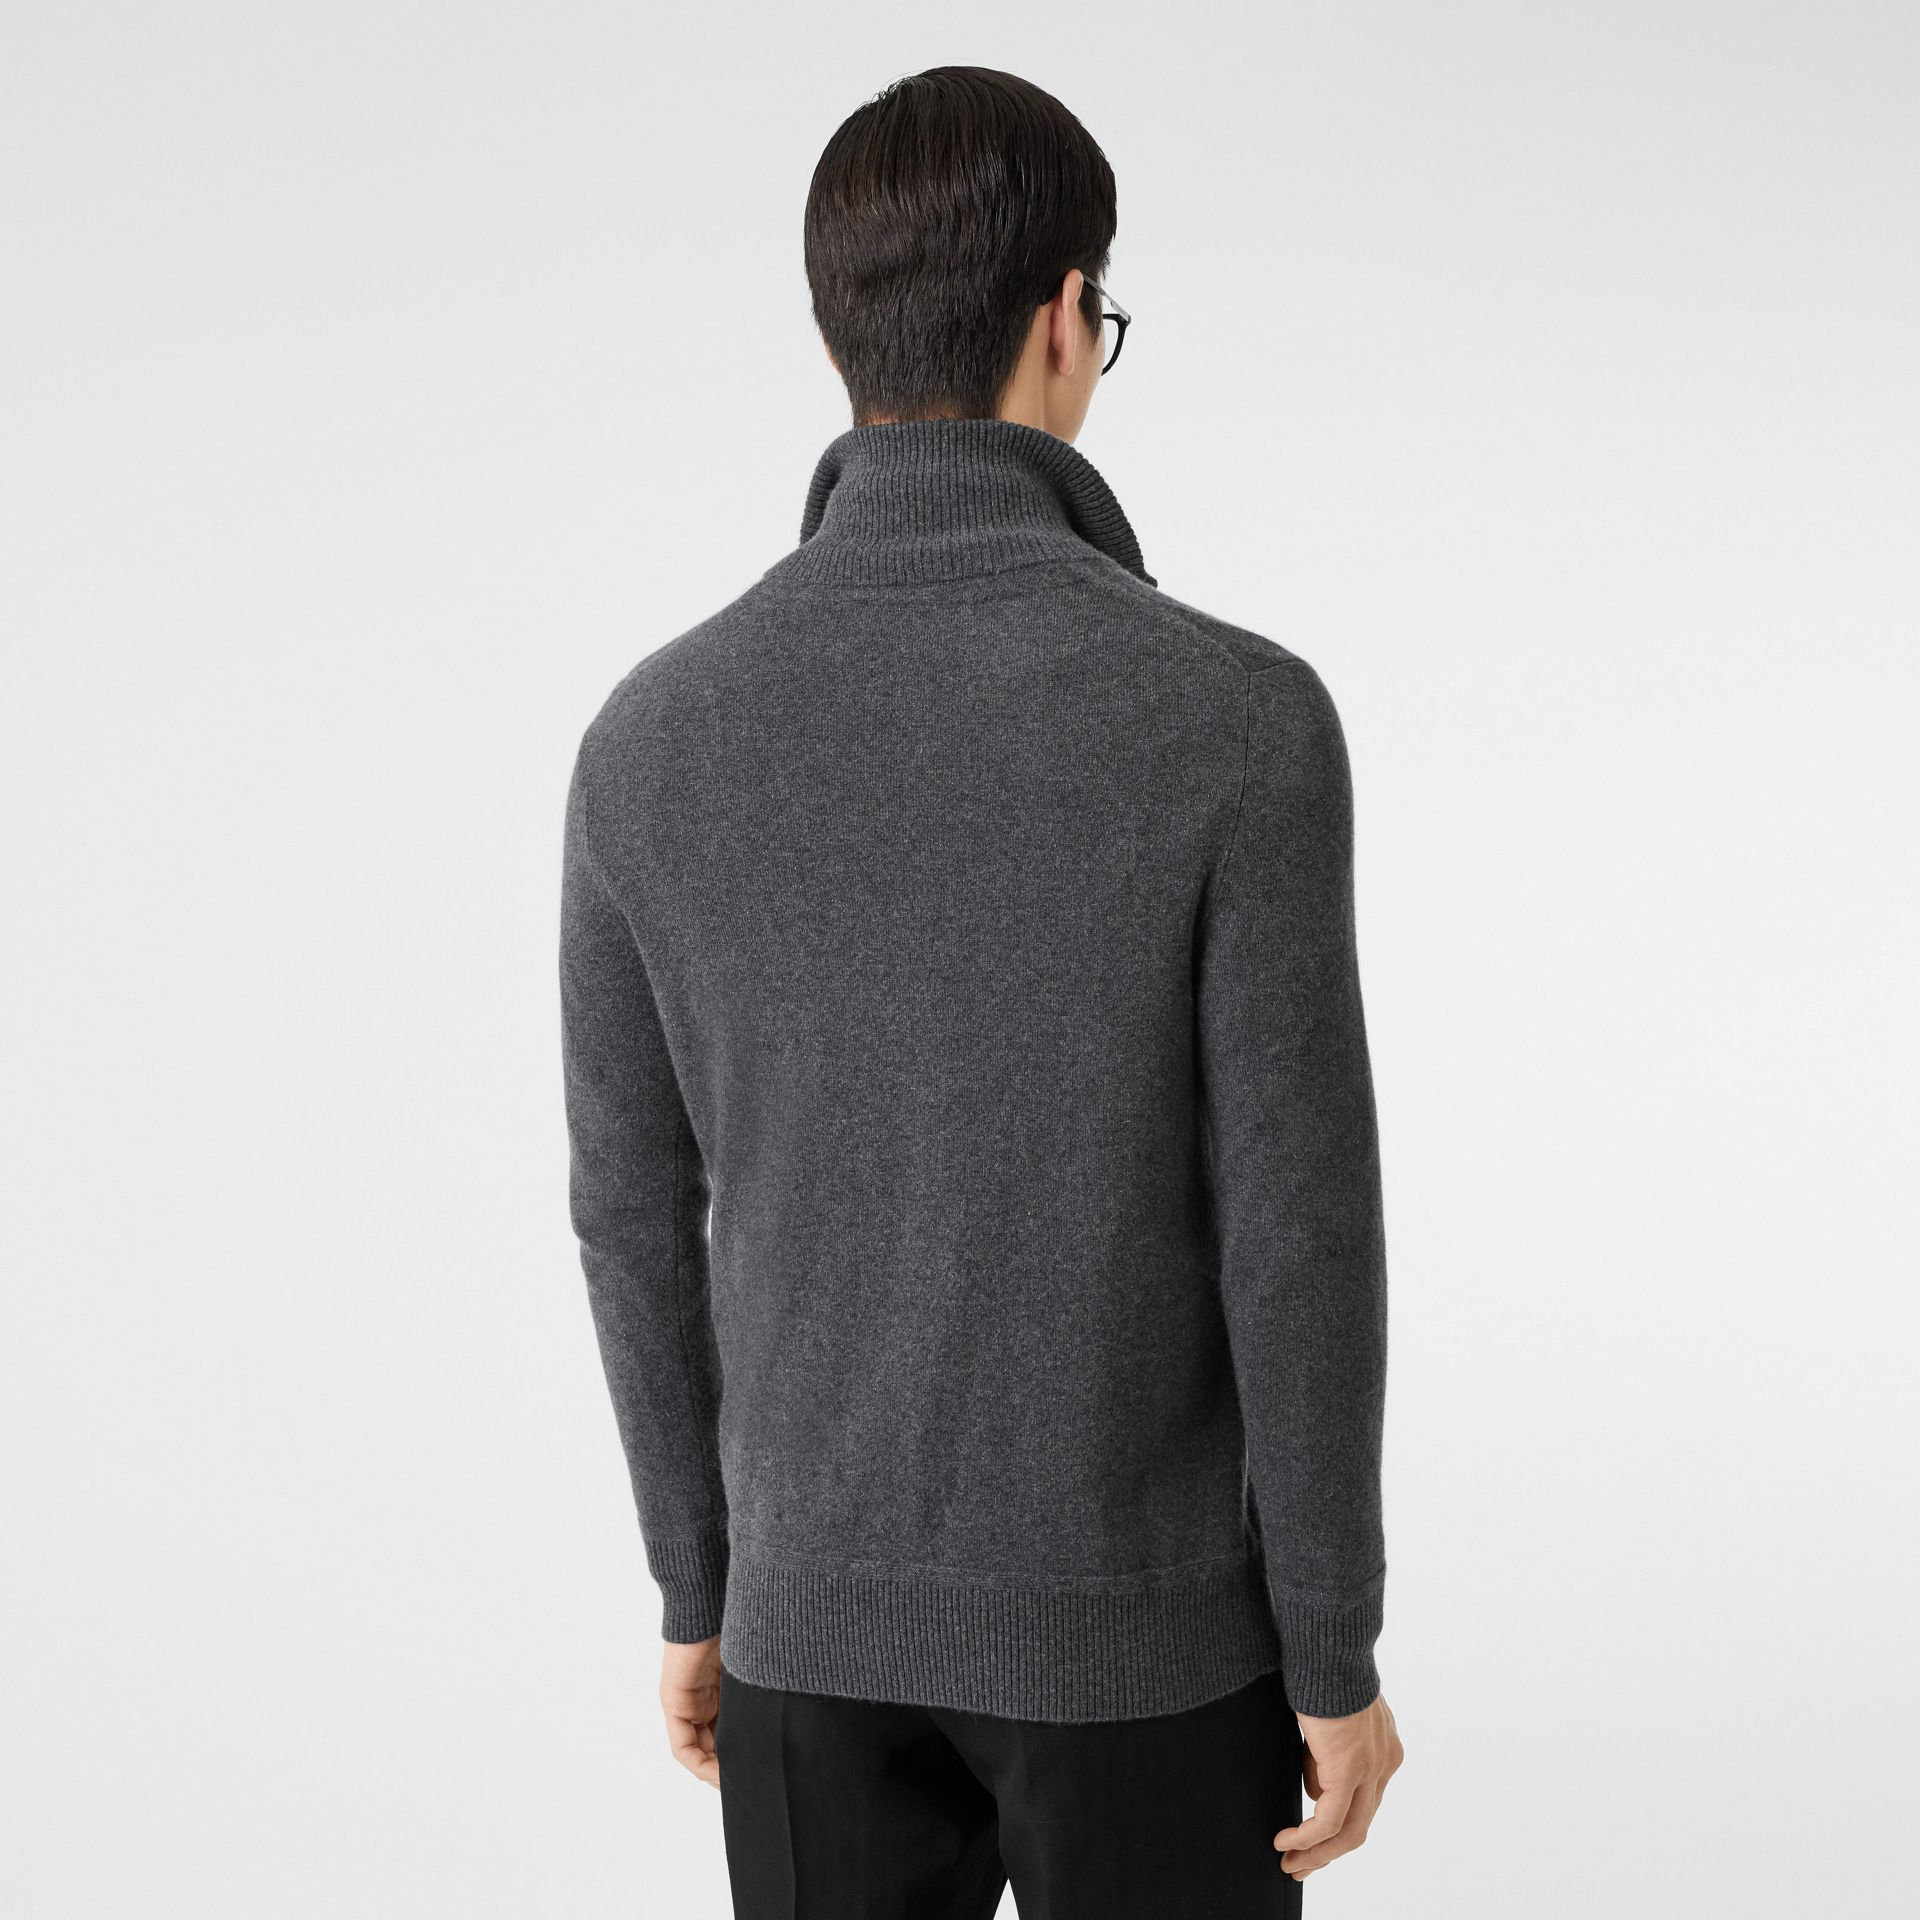 Monogram Motif Cashmere Funnel Neck Sweater in Steel Grey - Men | Burberry - gallery image 2